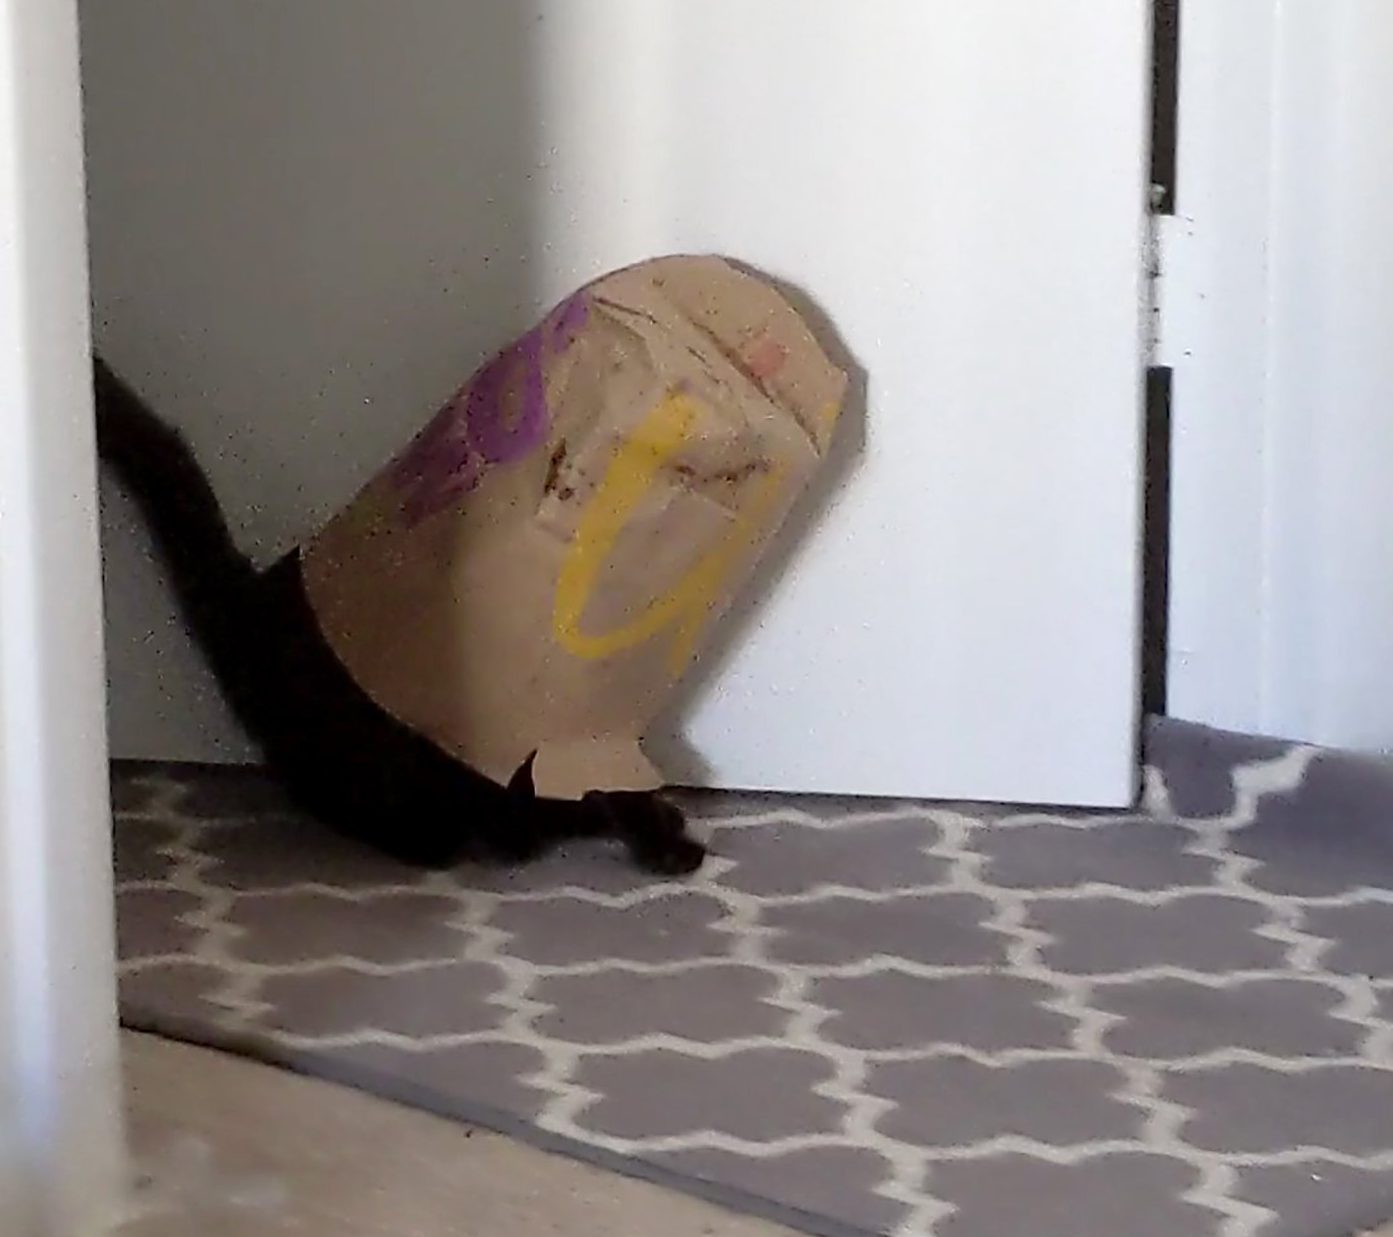 PIC FROM Kennedy News and Media (PICTURED: Velma the cat stuck in a paper Mc Donald's bag) TThis greedy kitten tried to play it cool when she got stuck in a McDonald's paper bag - blindly walking backwards out of the room as if trying to avoid being laughed at. Drew LaFasto and her fianc?? Zach Ellis had tossed the fast food bag to the side while enjoying their meal last Sunday and nosy Velma - known for loving human food - decided to snoop inside. When the eight-month-old short-haired black kitten found the bag empty she tried to back up, only for the bag to get caught on her and stuck on her head. SEE KENNEDY NEWS COPY - 0161 697 4266